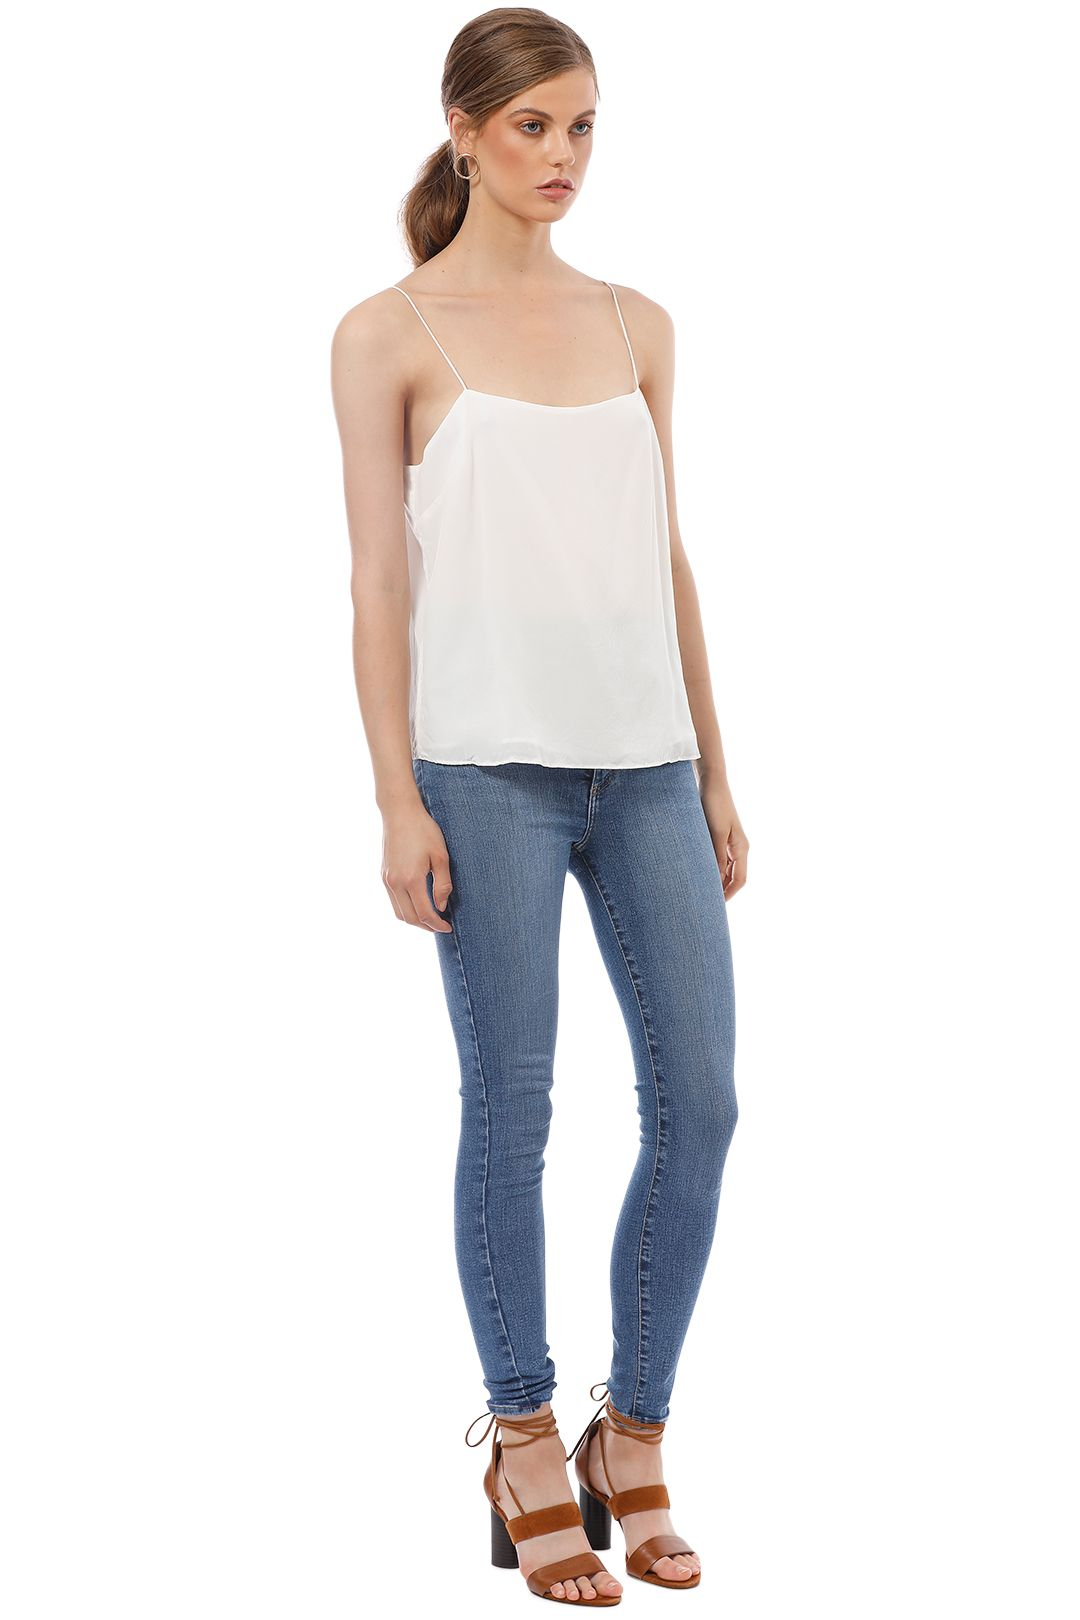 Elka Collective - Lucca Cami - White - Side